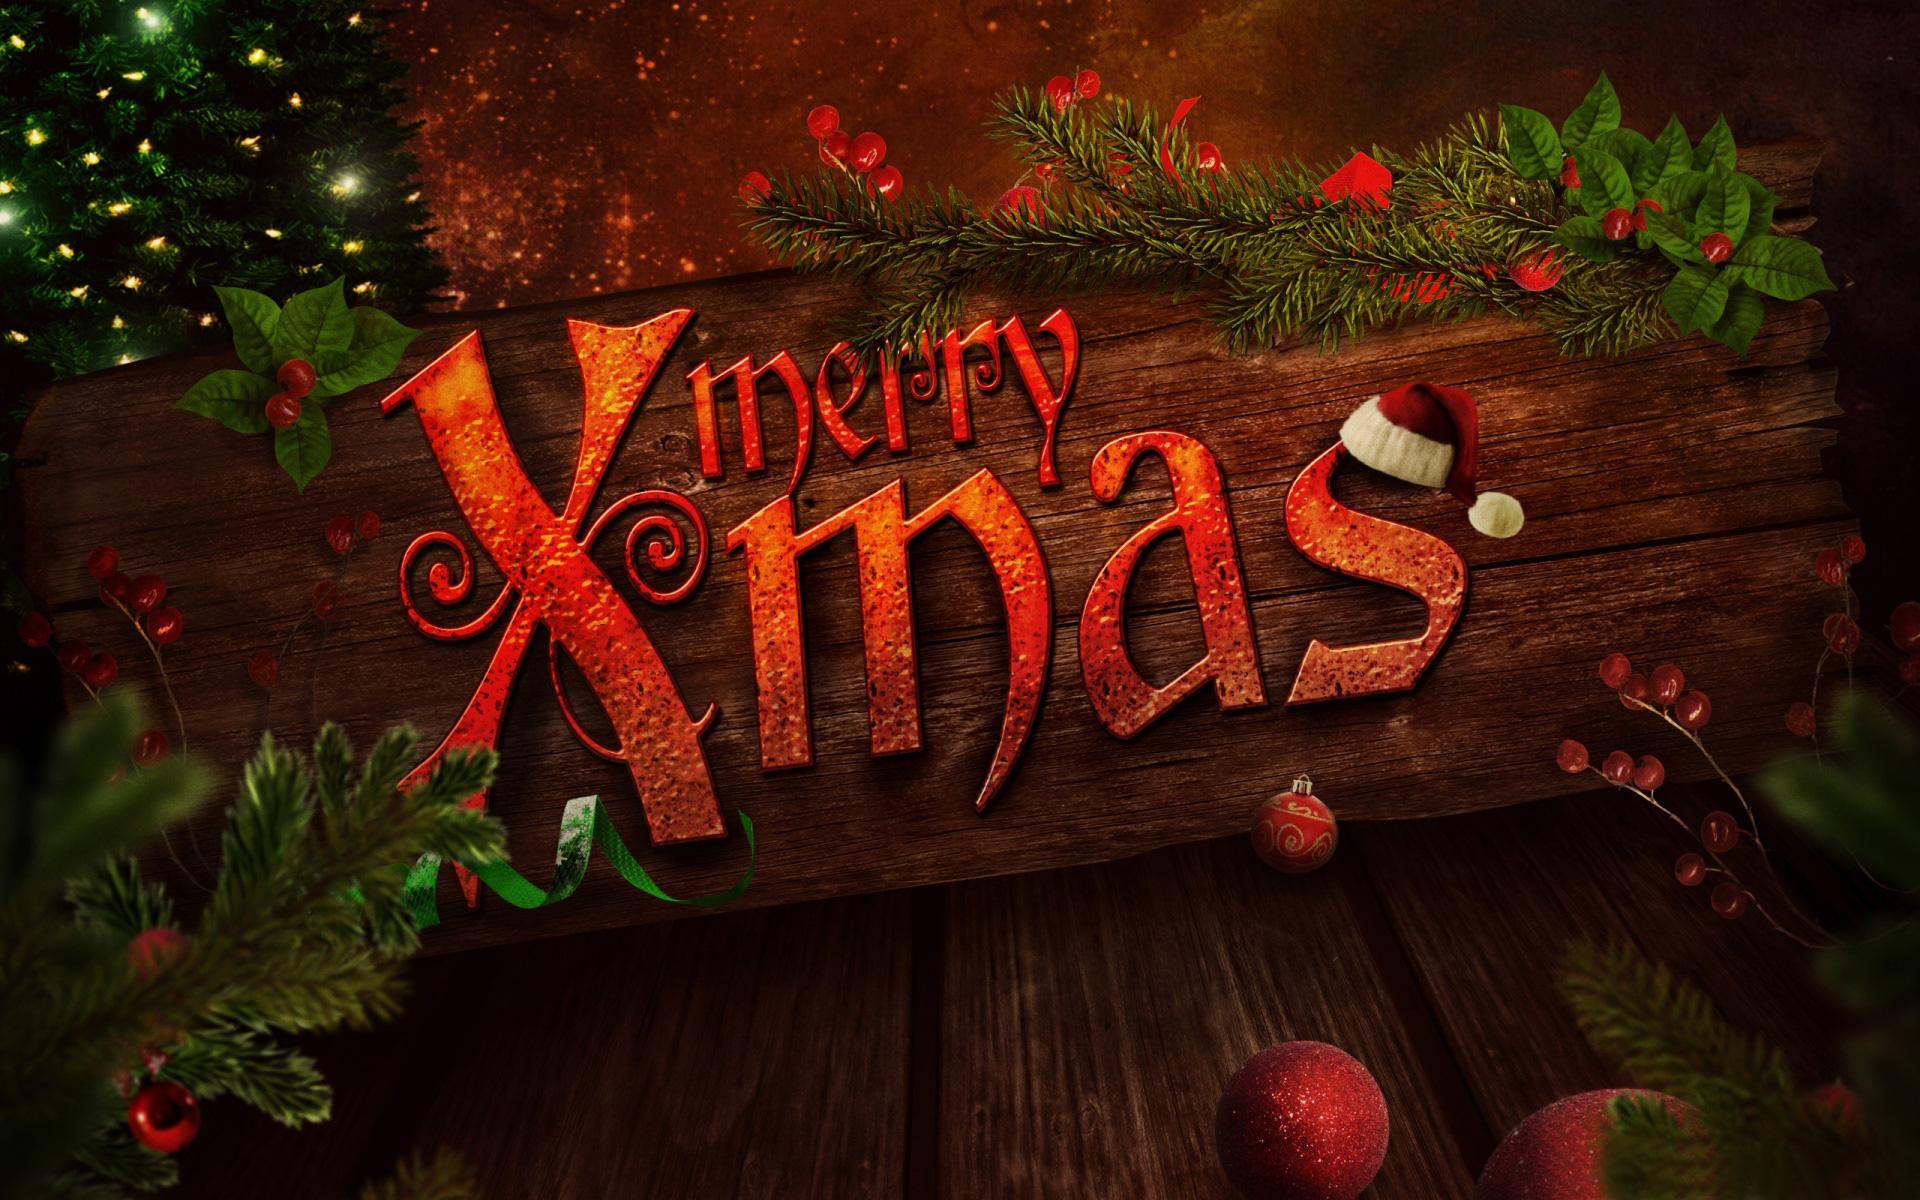 Merry-Xmas-wallpaper1920x1200